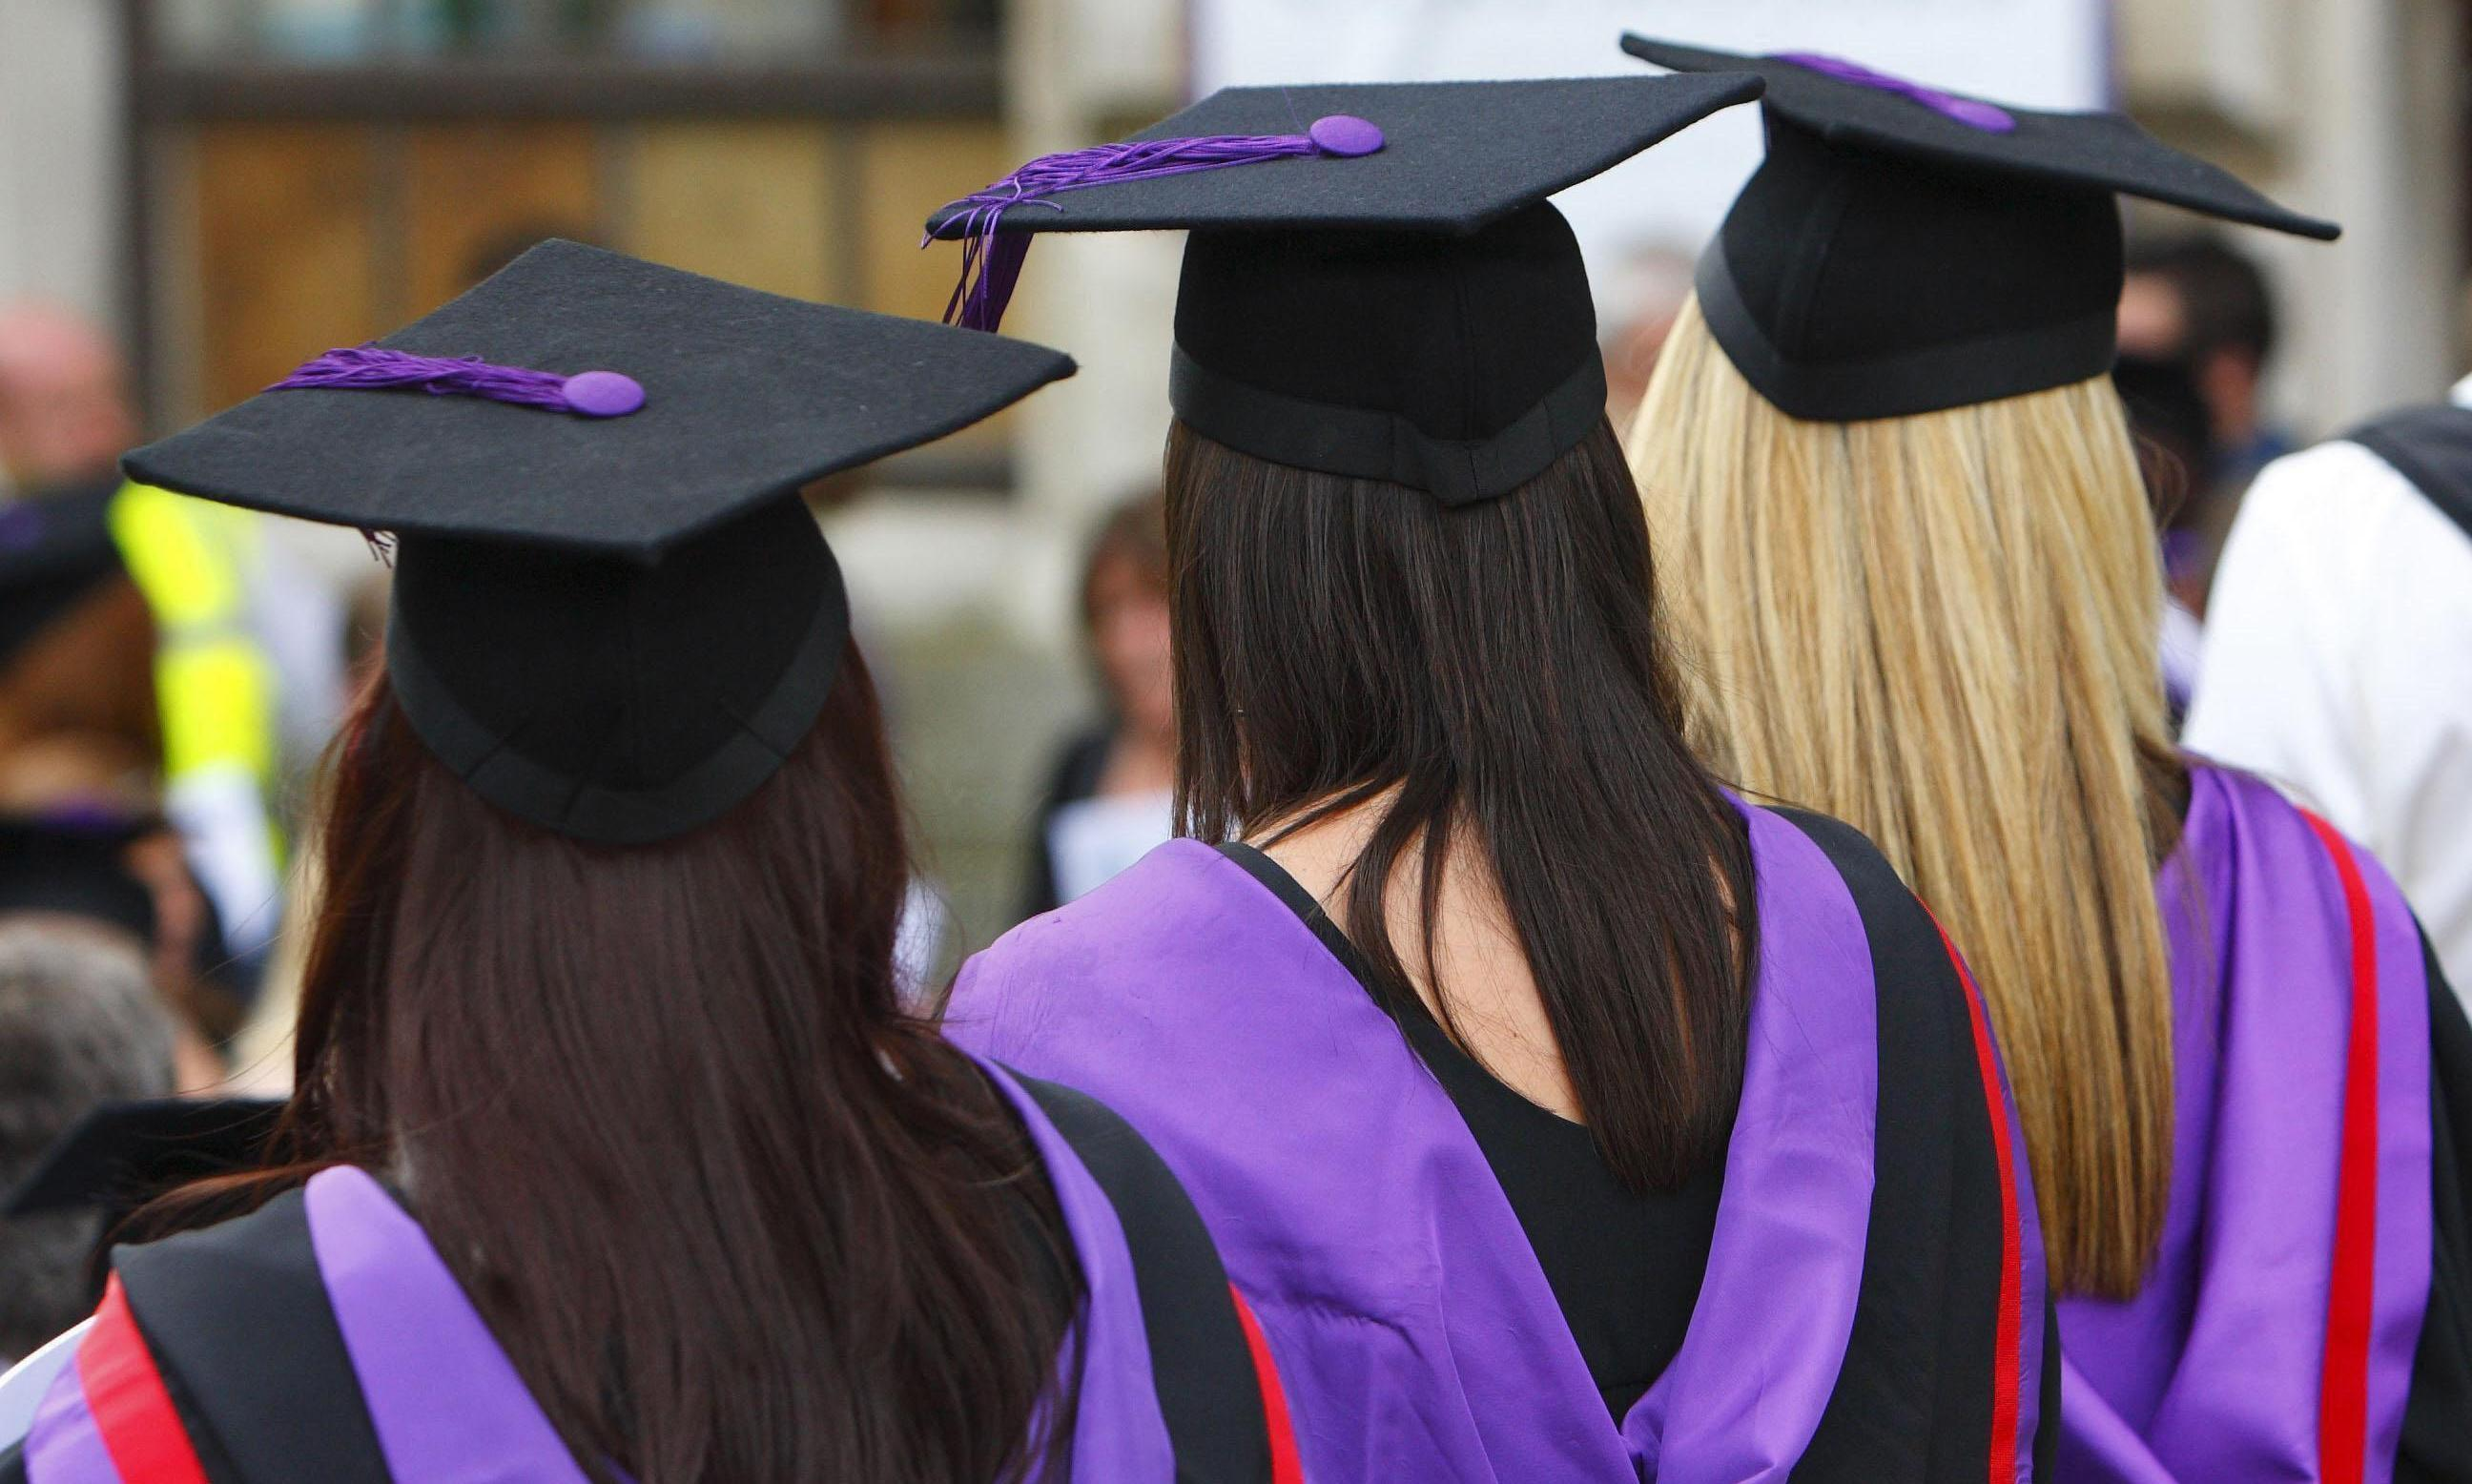 Change in student loan accounting could add £10bn to national debt